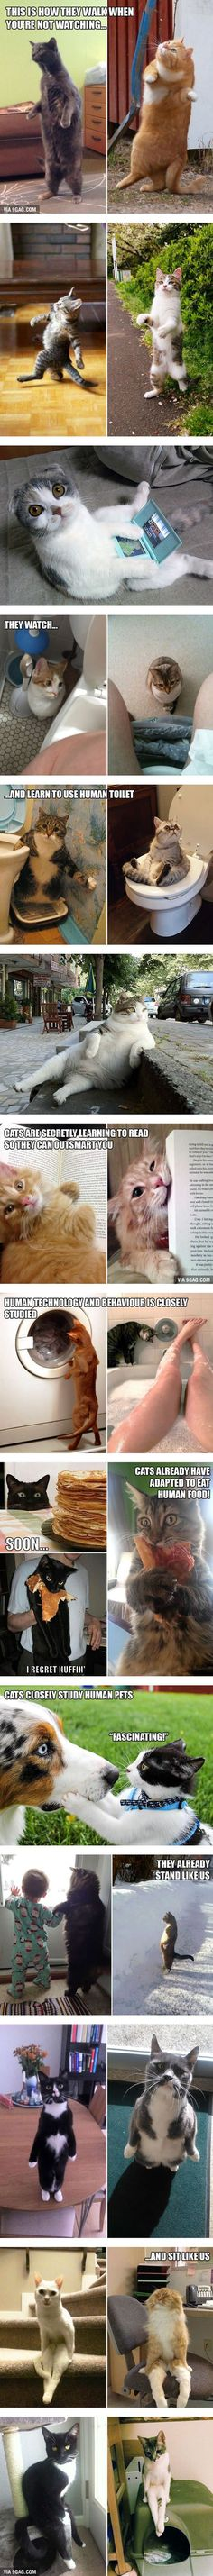 25 Pics Prove That Cats Are Slowly Evolving Into Humans